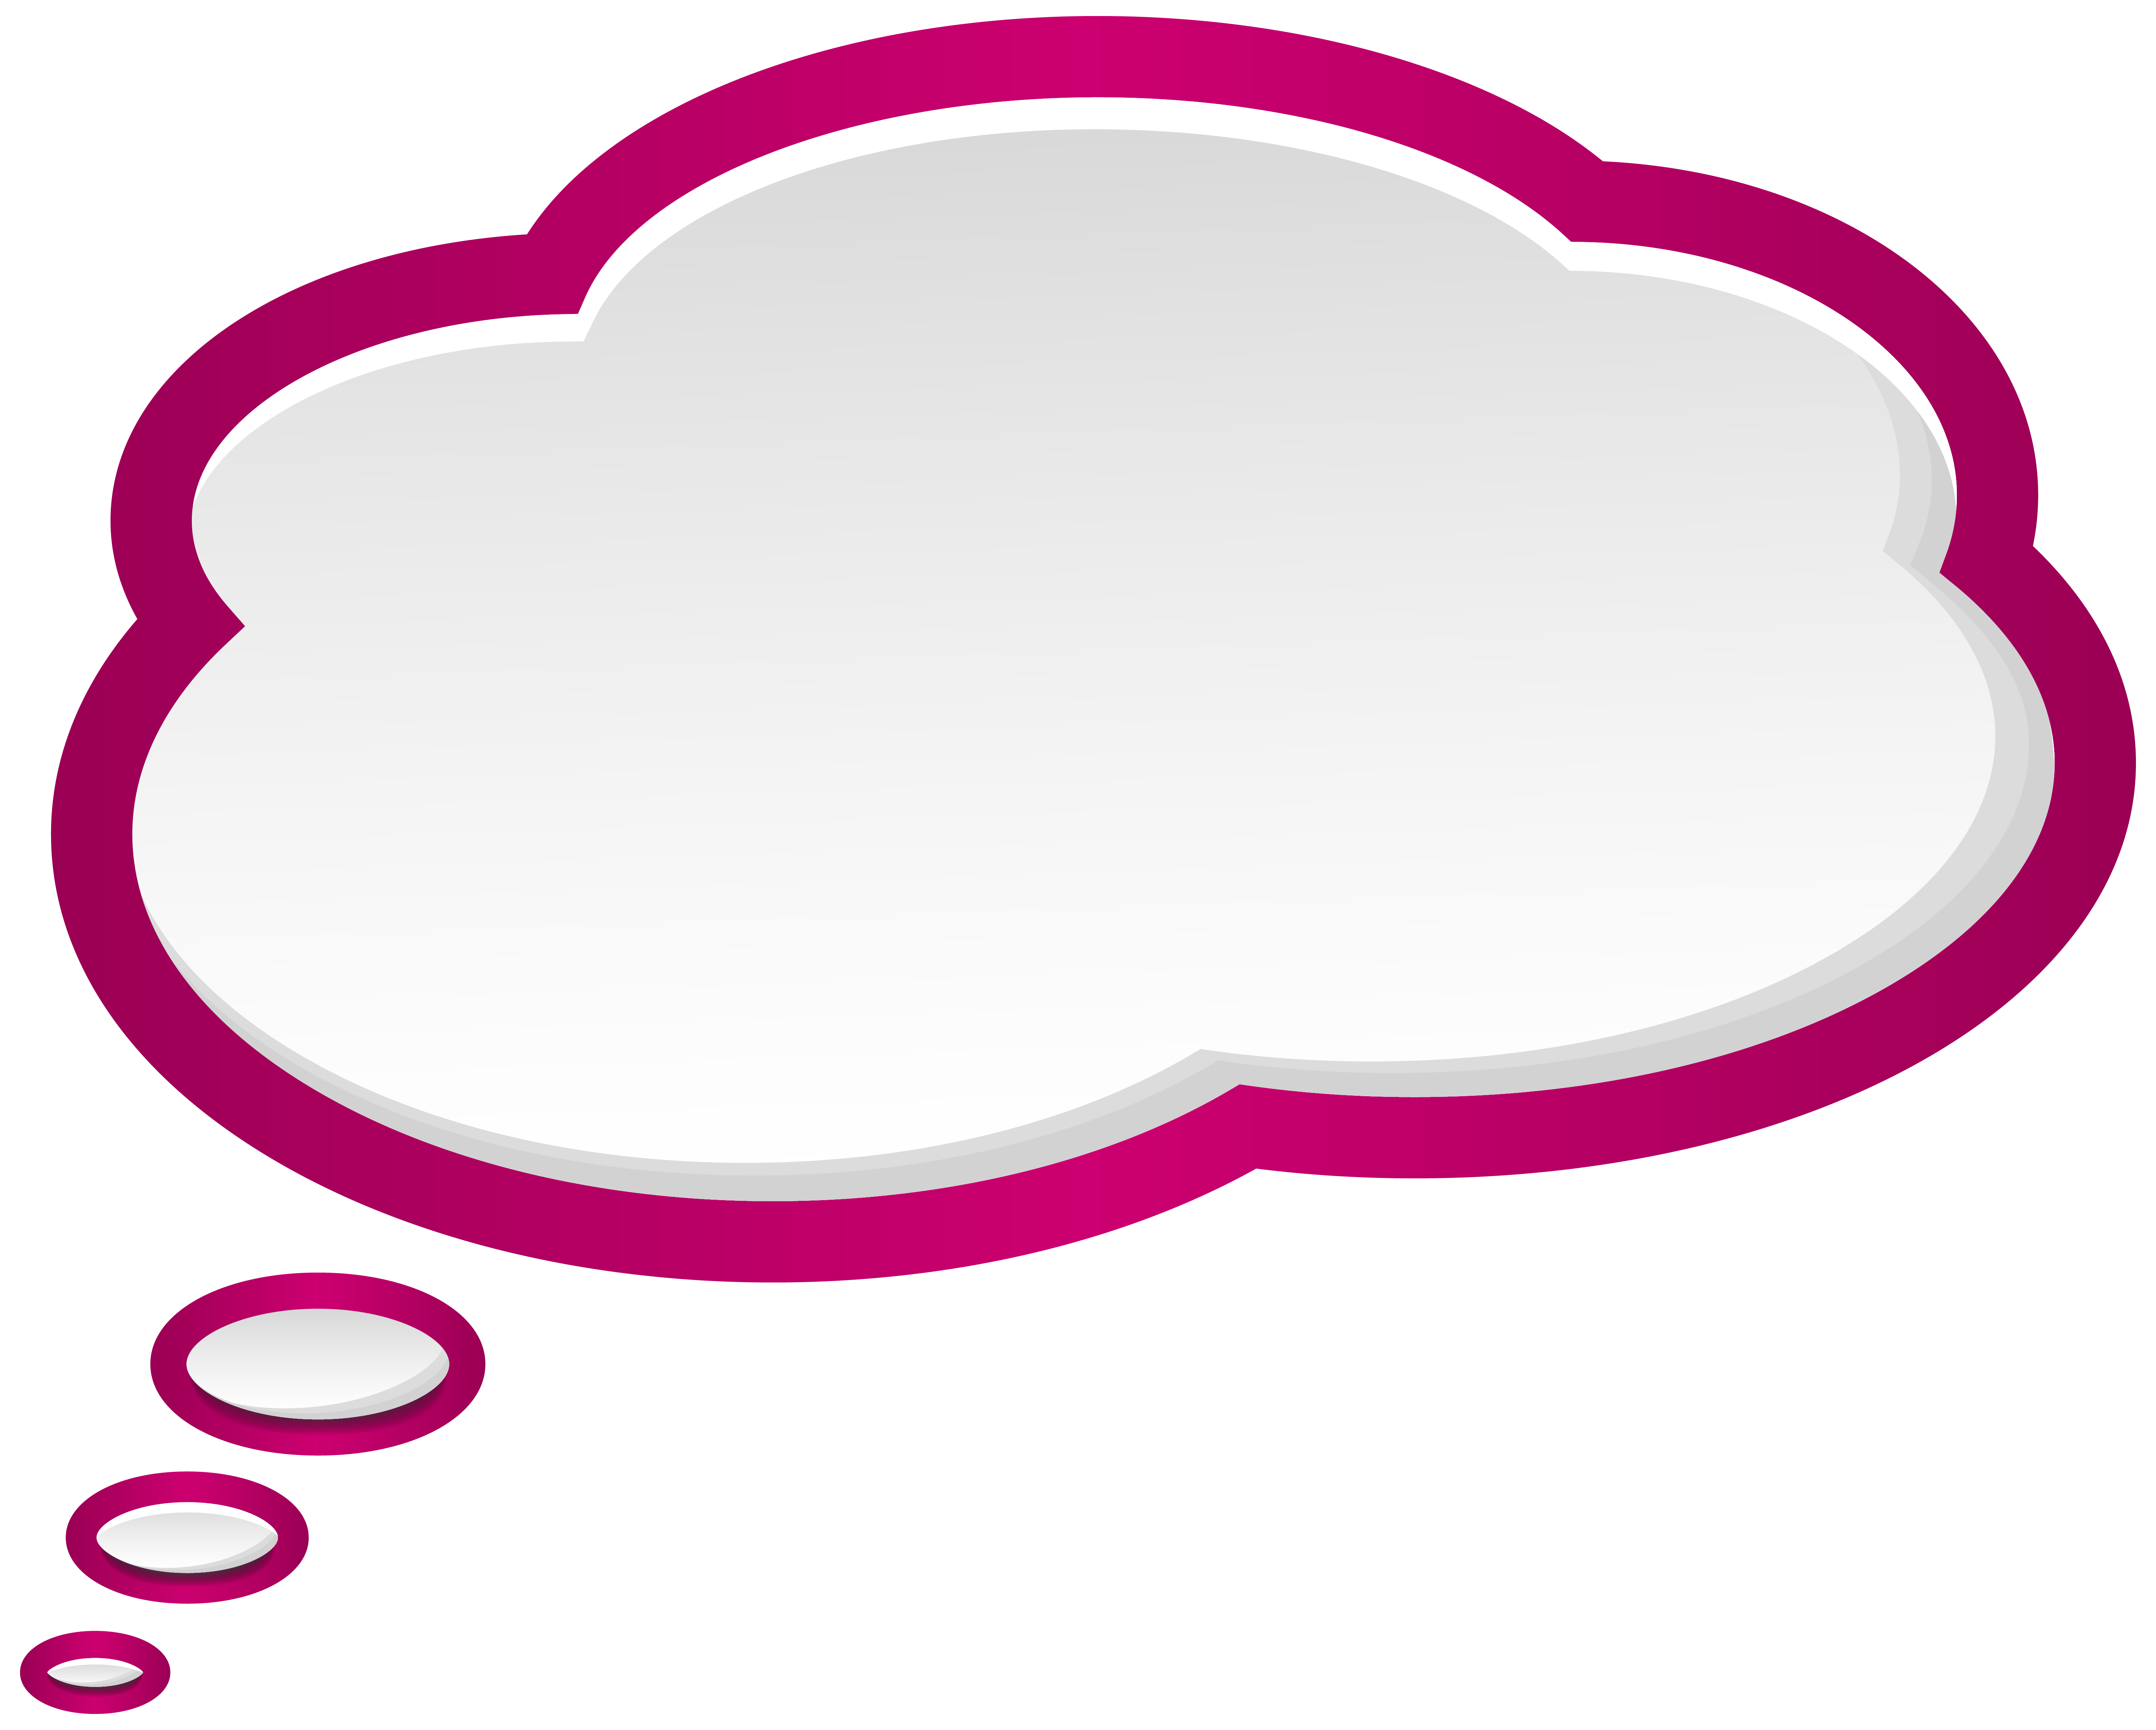 Cartoon bubble png. Speech pink white clip